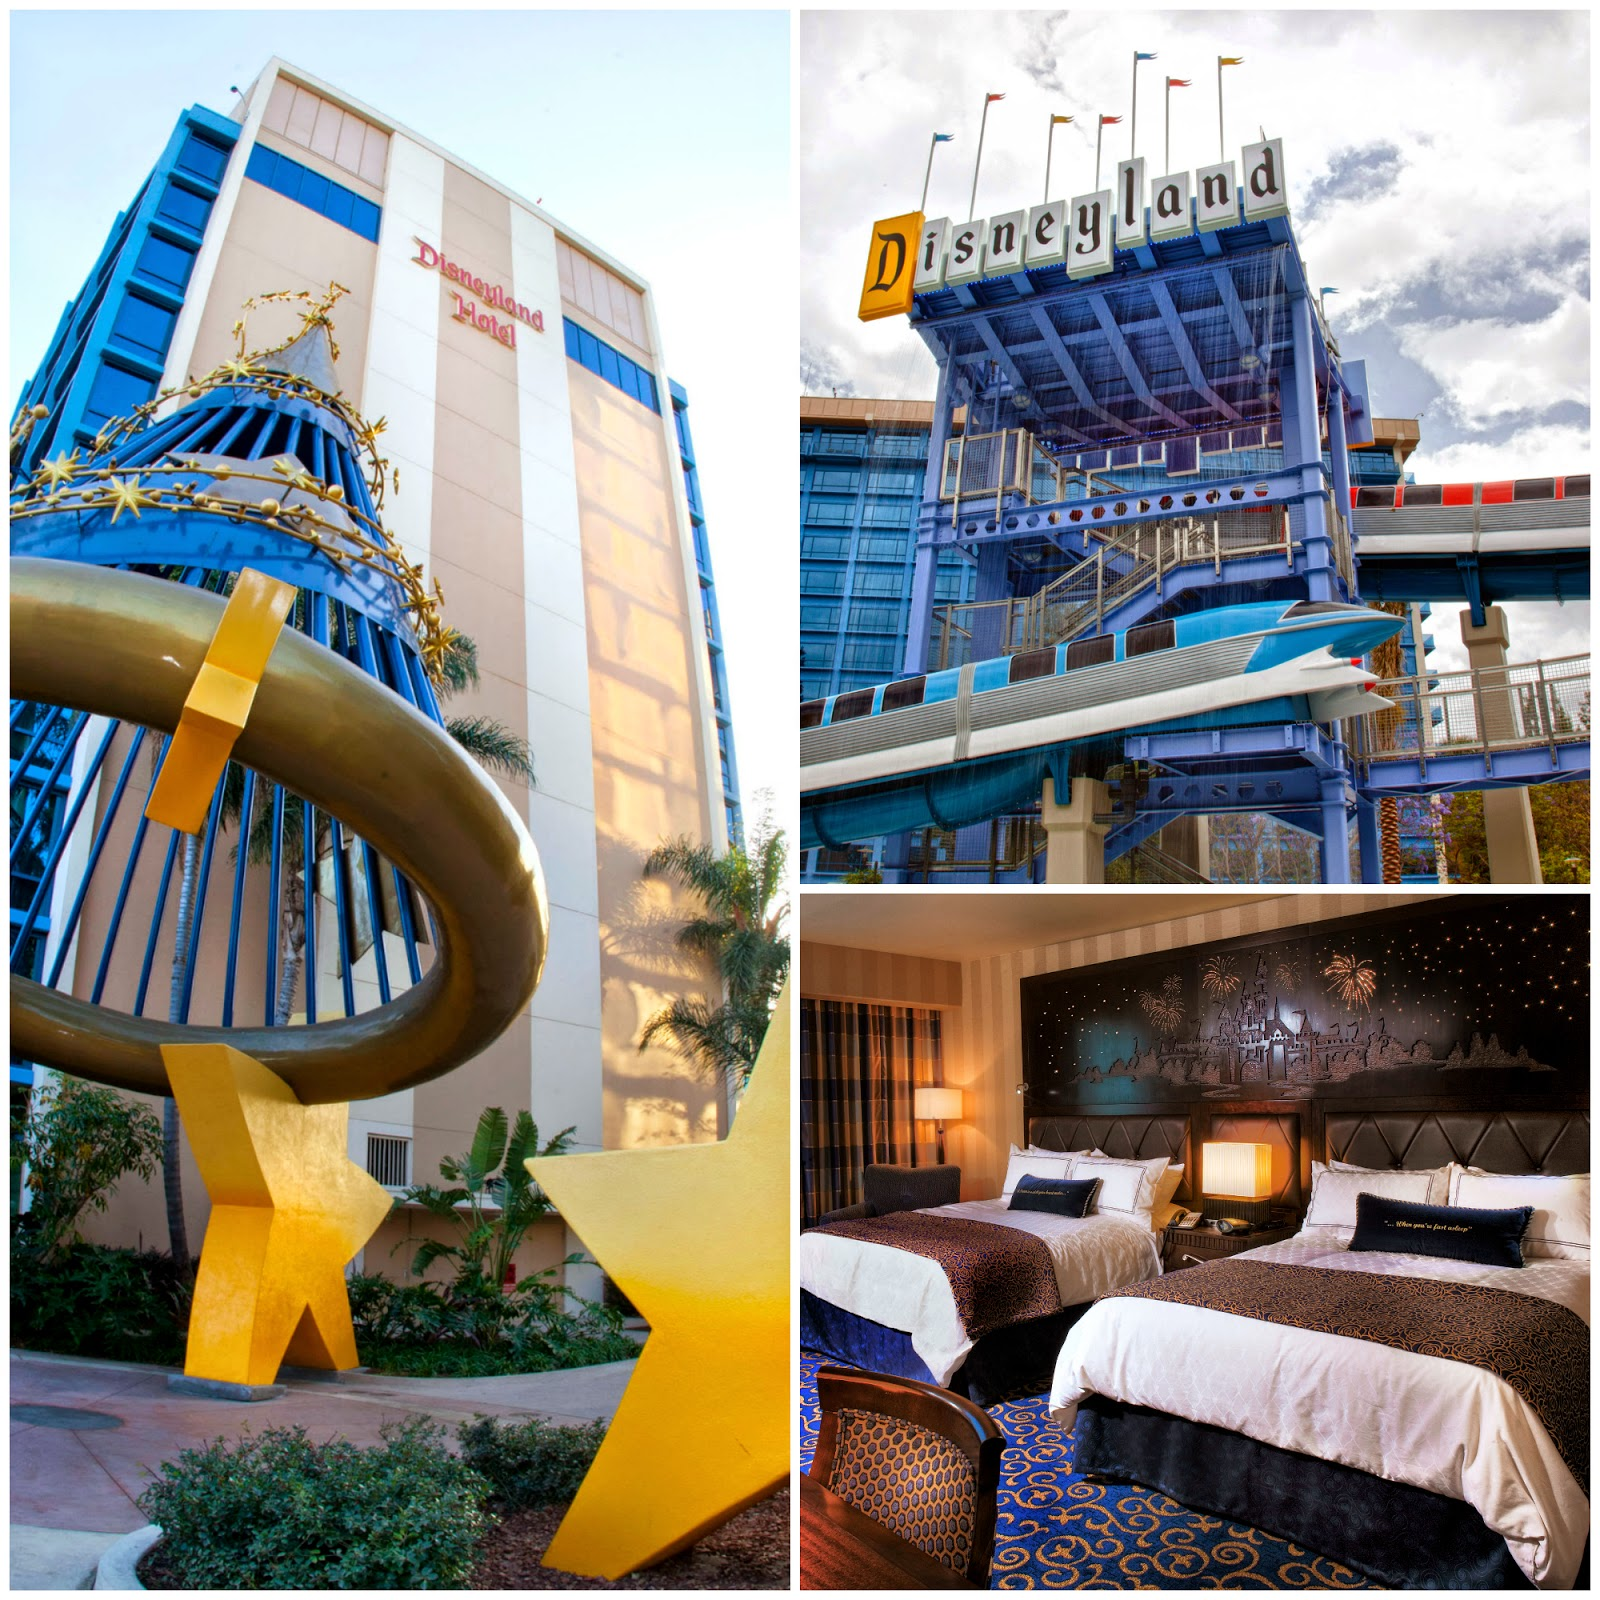 Is the Disneyland Hotel the best on-site option for a Disneyland Vacation?